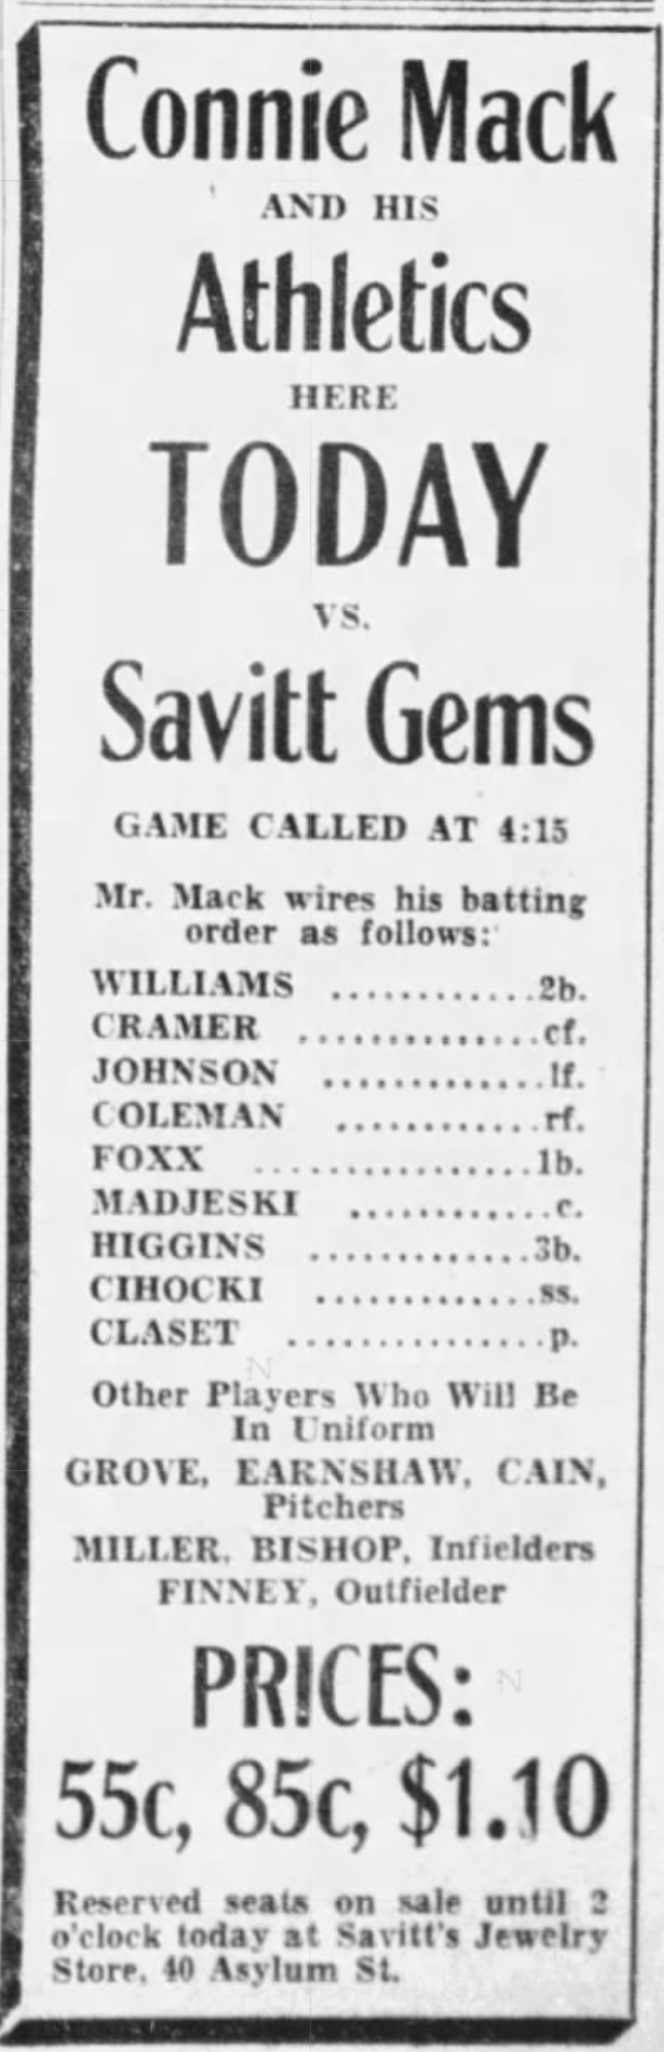 An advertisement for the game published in the Hartford Courant - 1933.